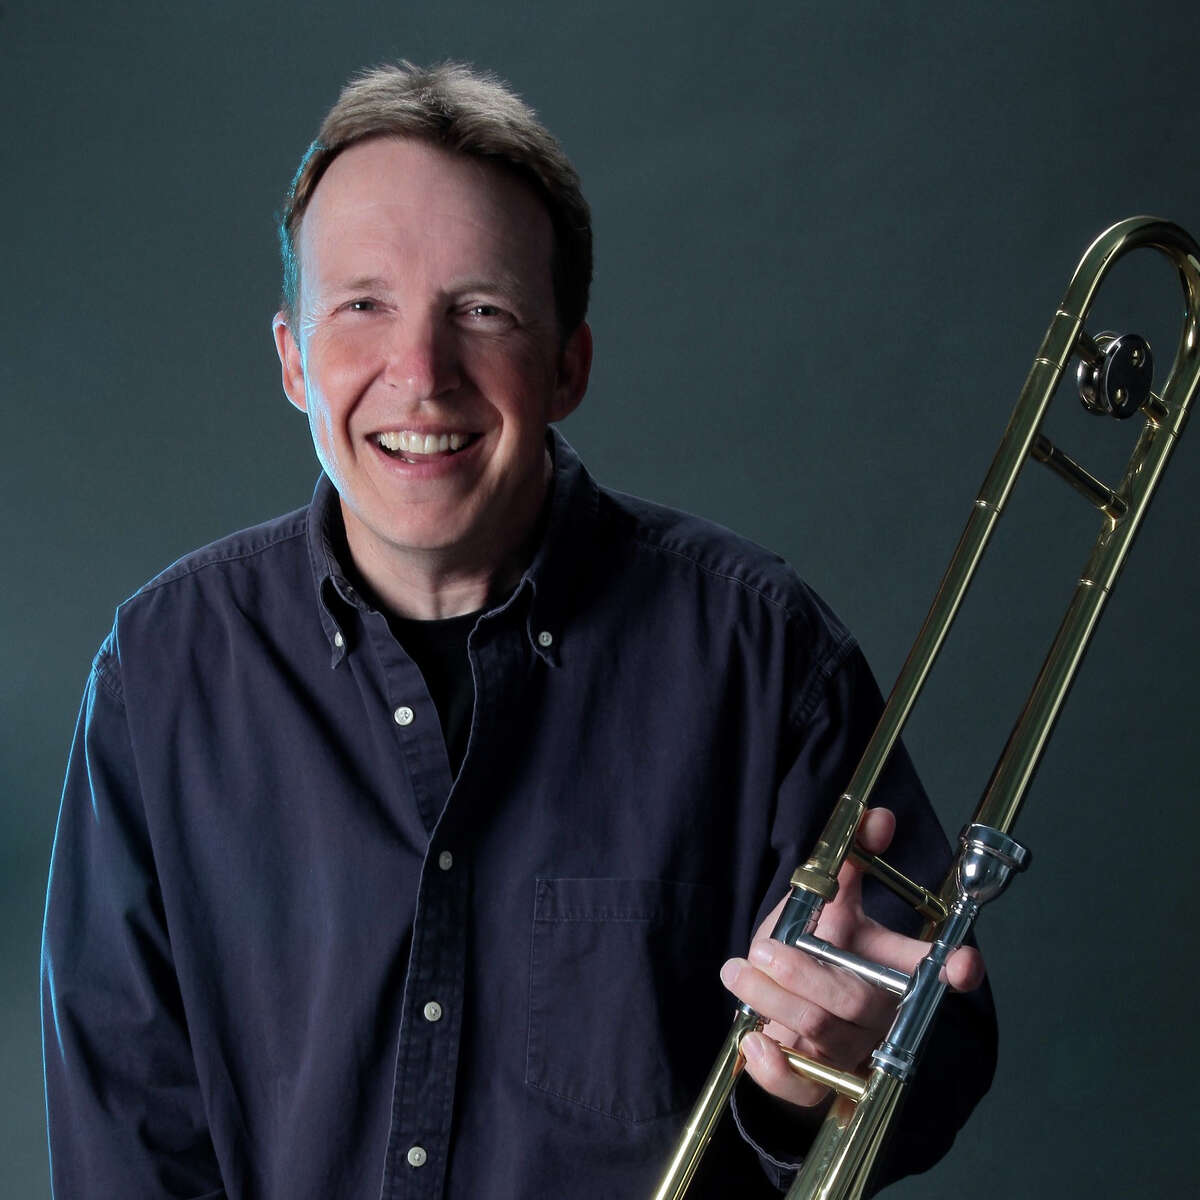 Doug Sertl is artistic director of the new Bop Island Jazz Festival at the Woodstock Playhouse